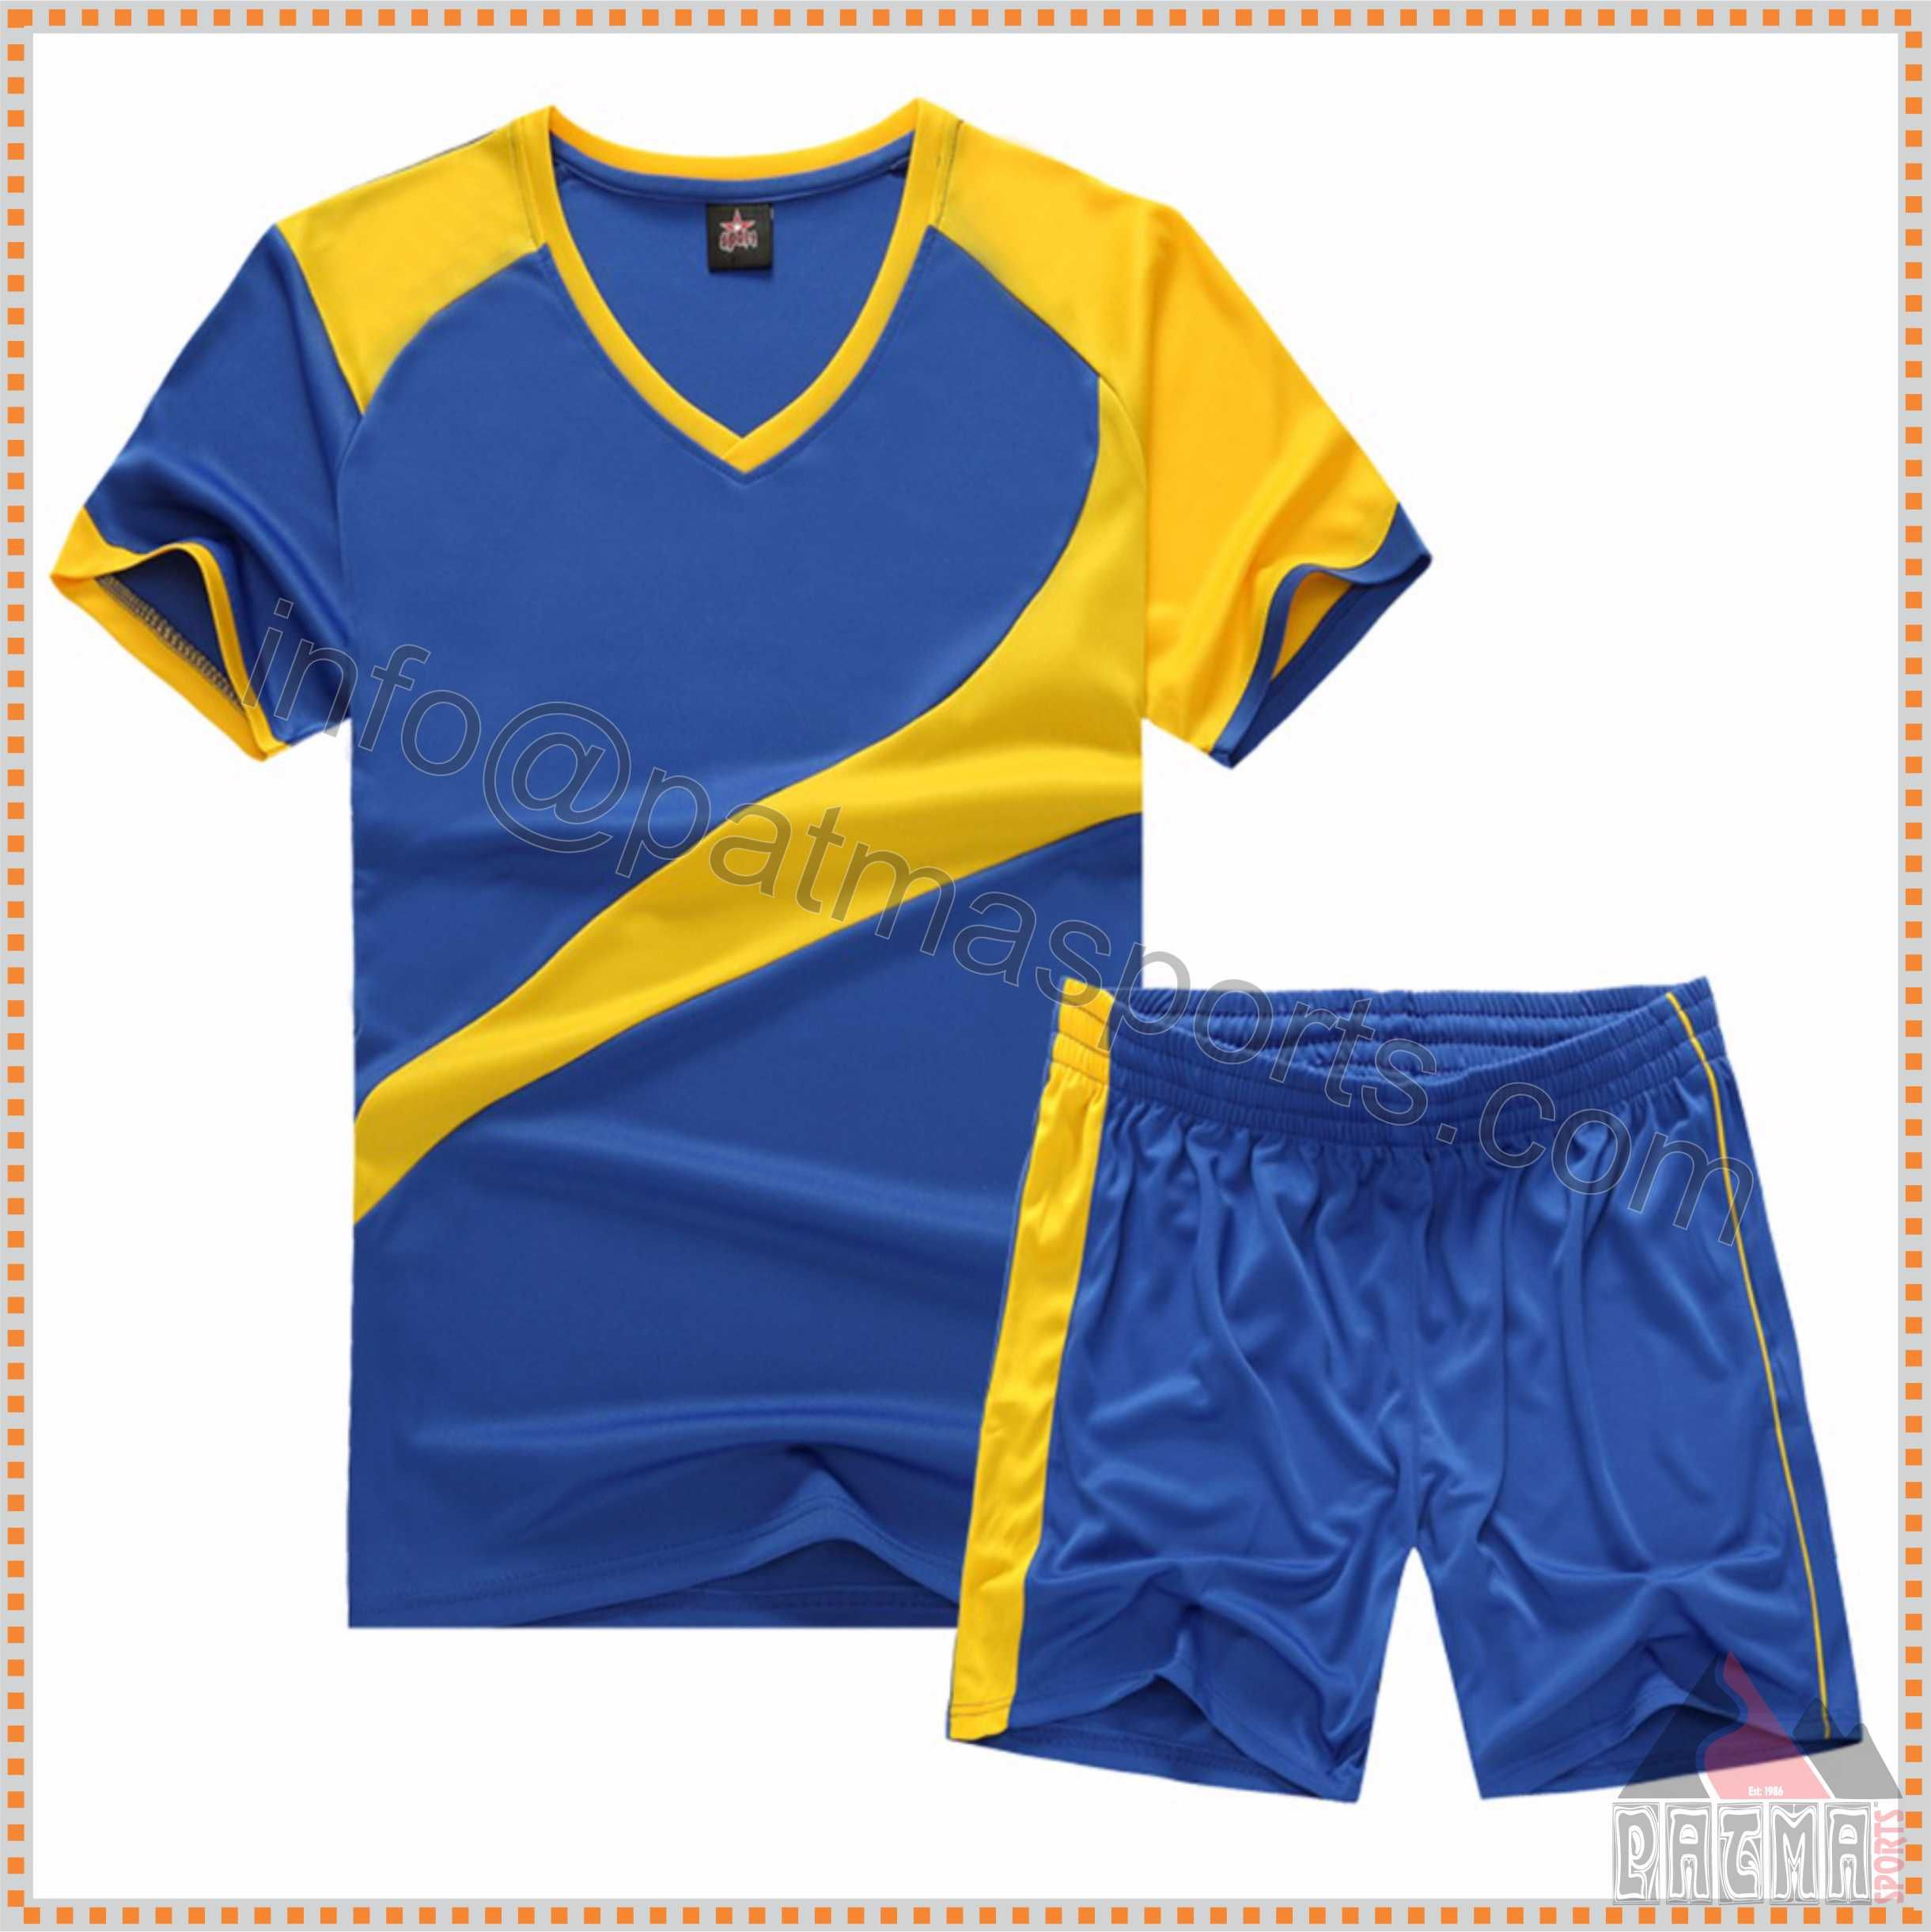 Pin By Percy On Camisetas De Futbol In 2020 Sportswear Volleyball Outfits Gym Shorts Womens